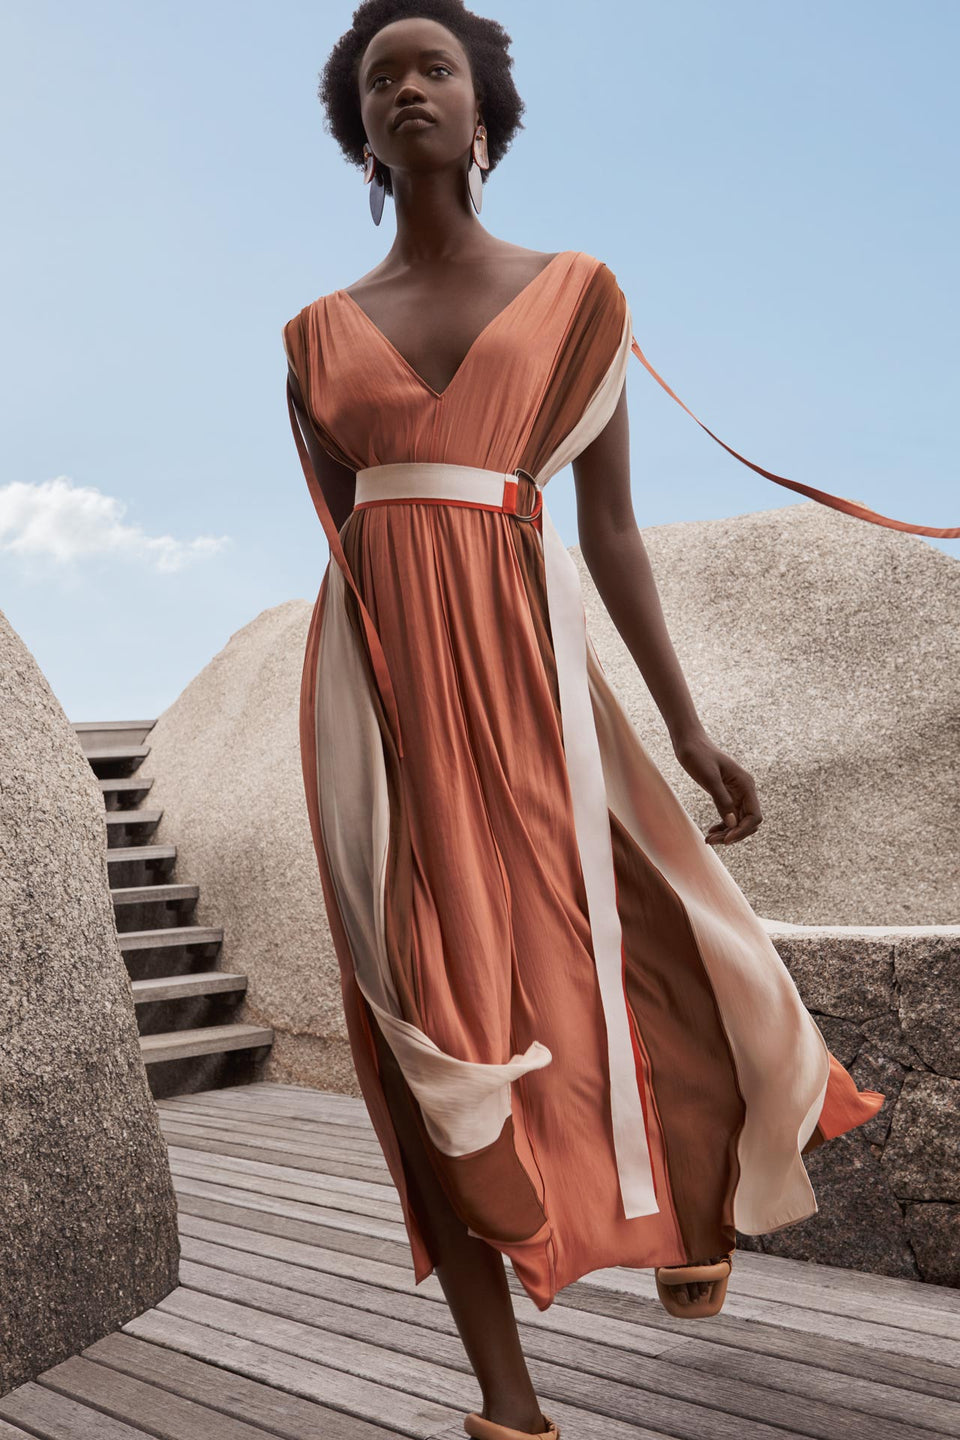 CARL KAPP SS2020 collection in Seychelles Six Senses Zil Pasyon | Bel Air dress